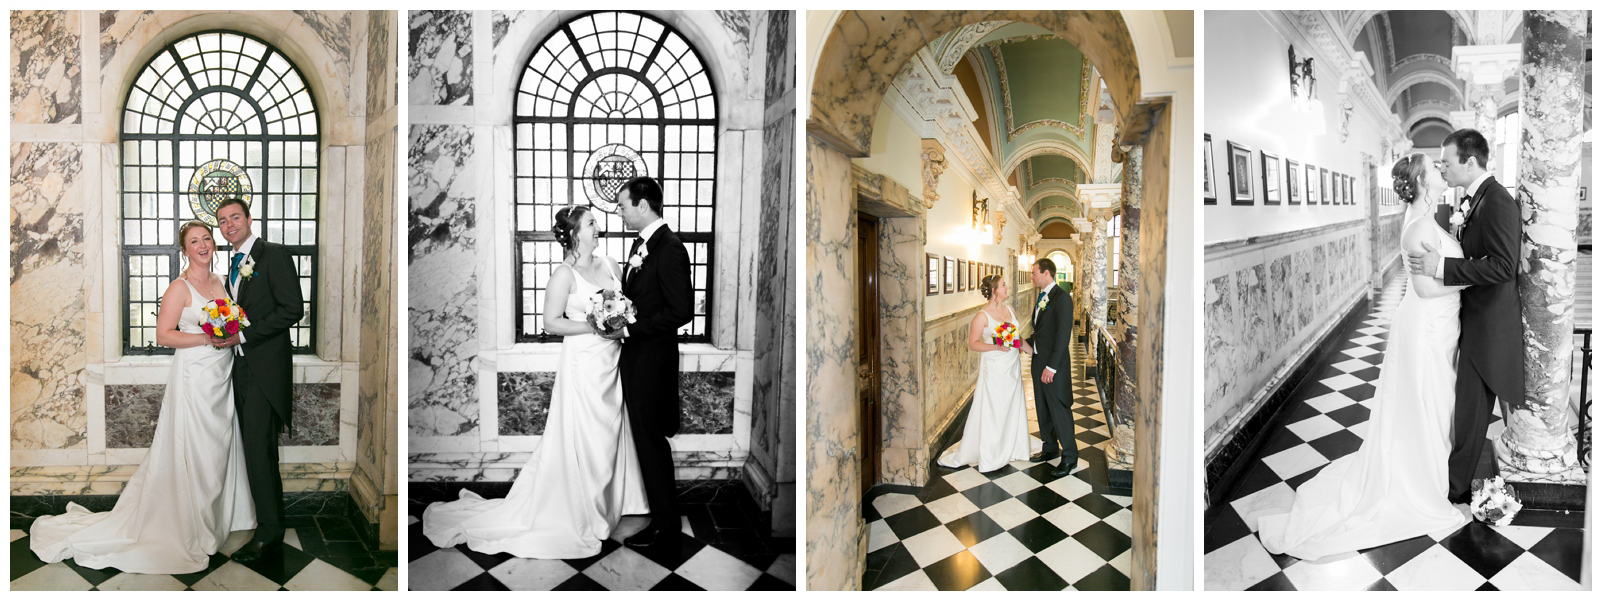 Wedding photography at Stockport Town Hall